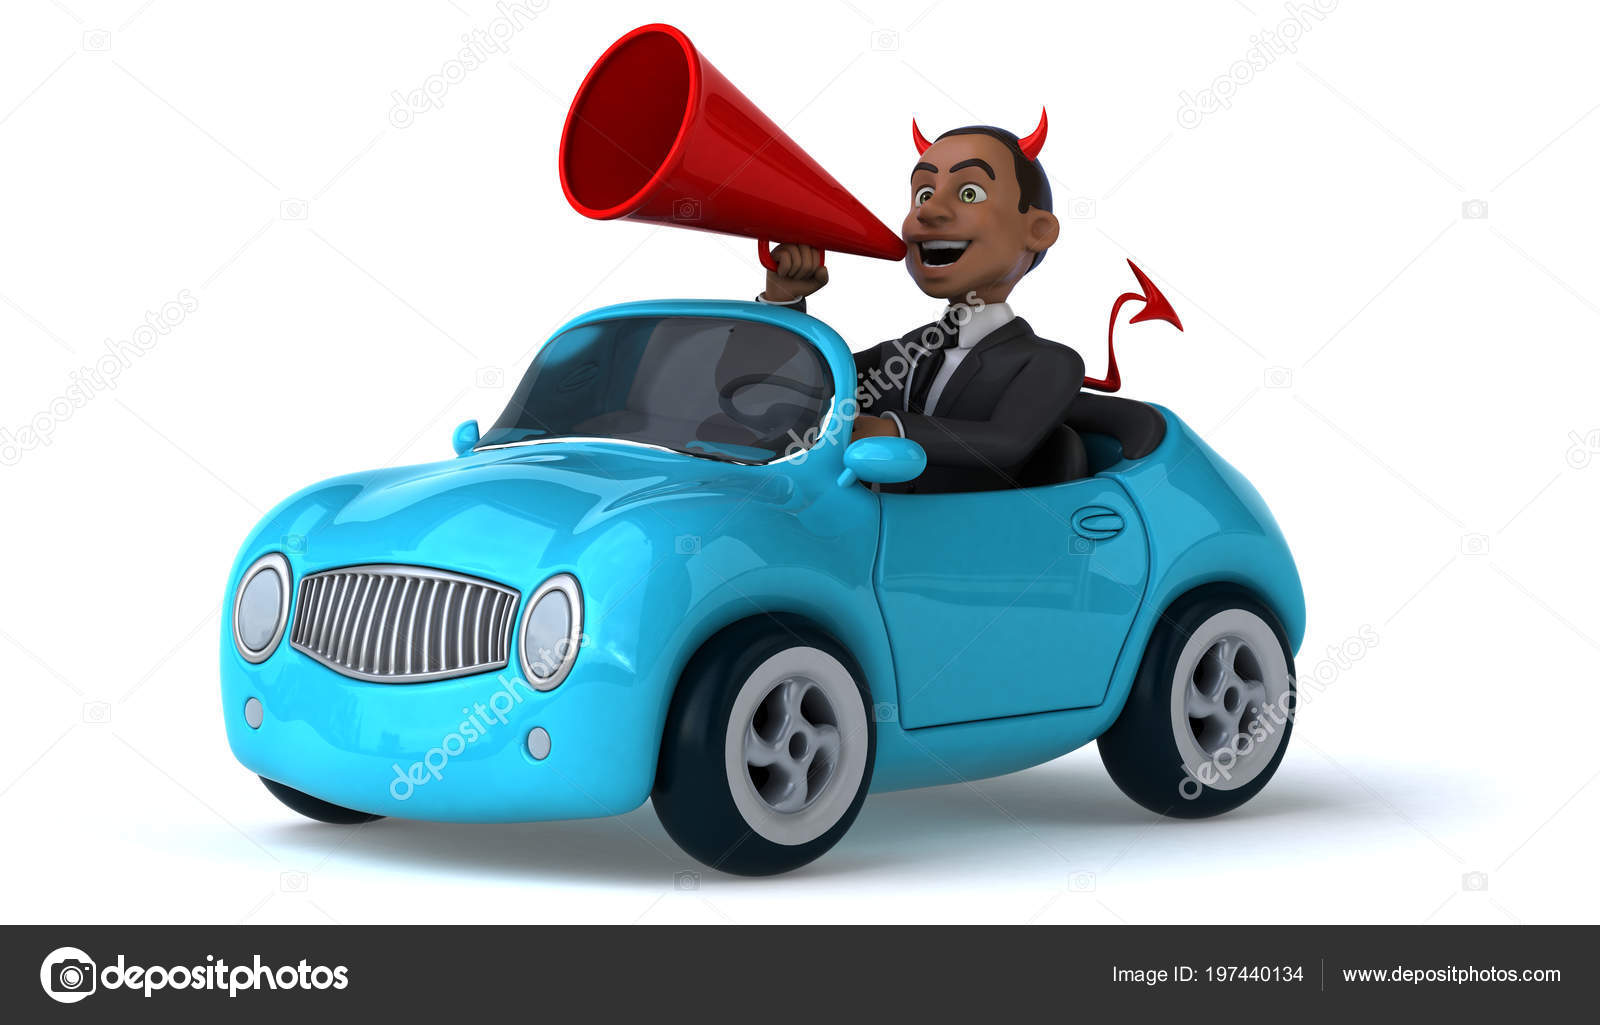 Funny Cartoon Character Car Illustration Stock Photo C Julos